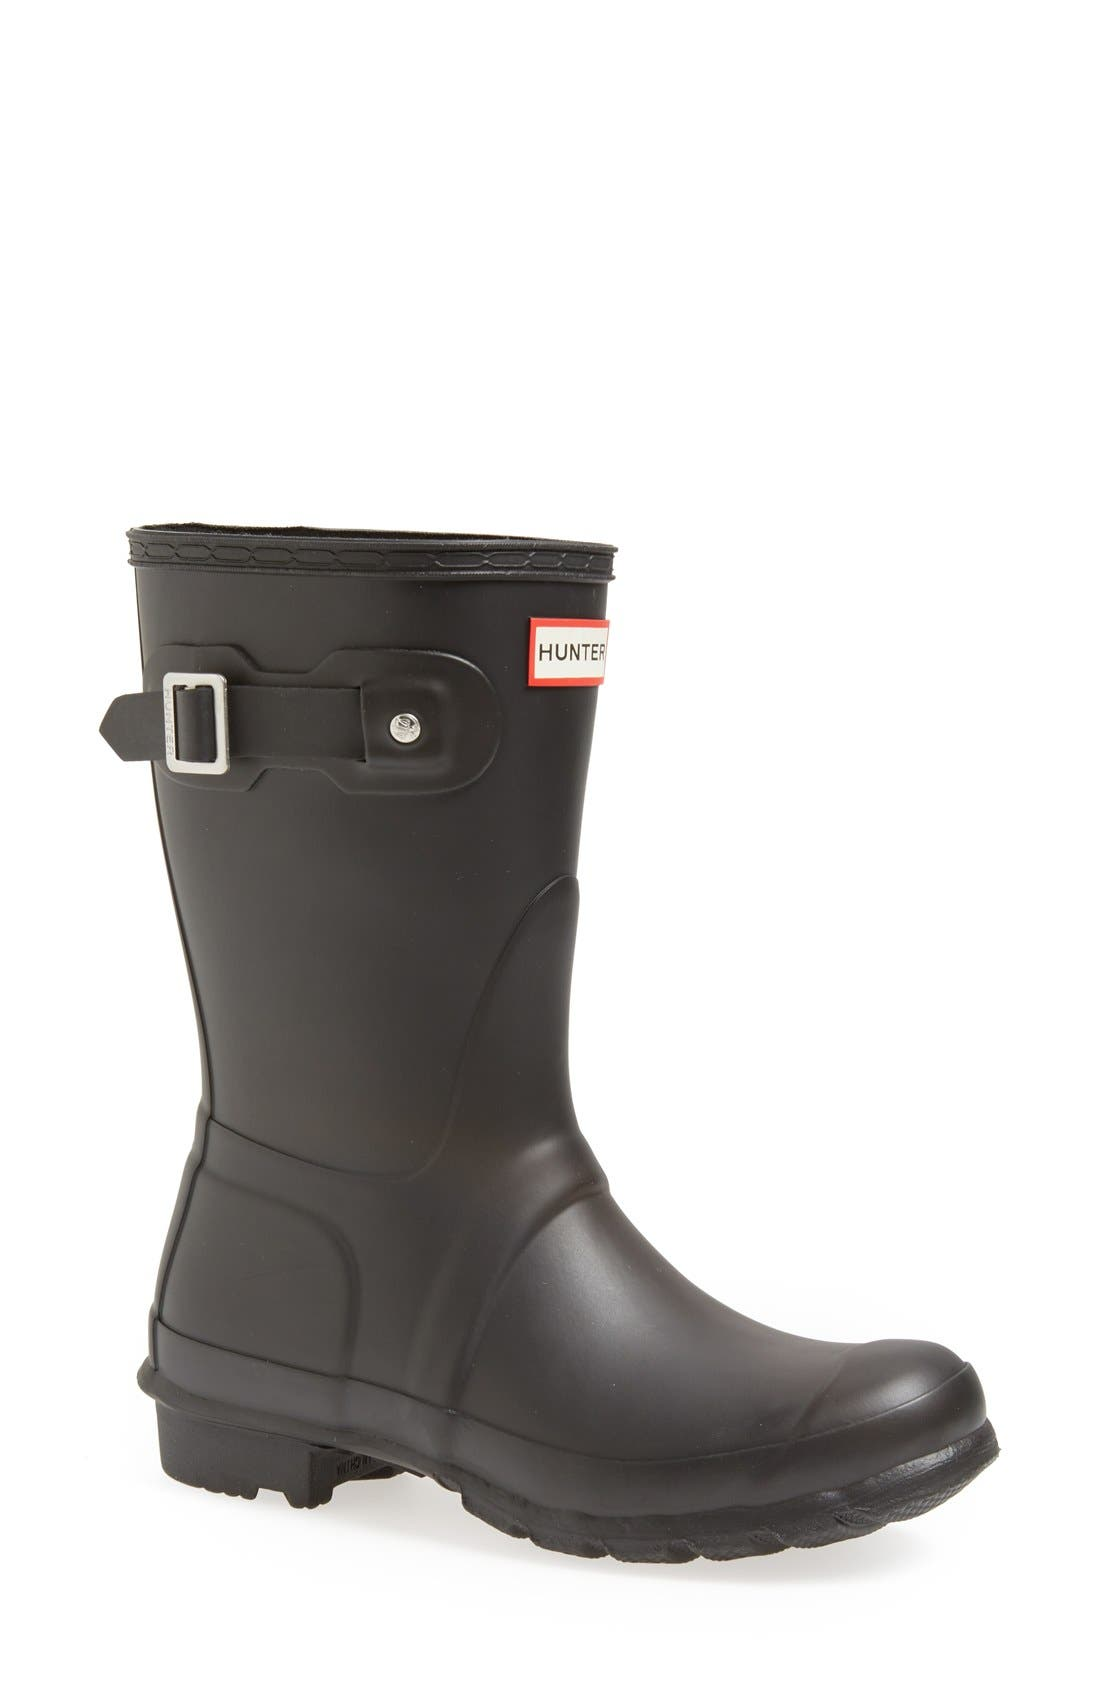 Alternate Image 1 Selected - Hunter 'Original Short' Rain Boot (Women)